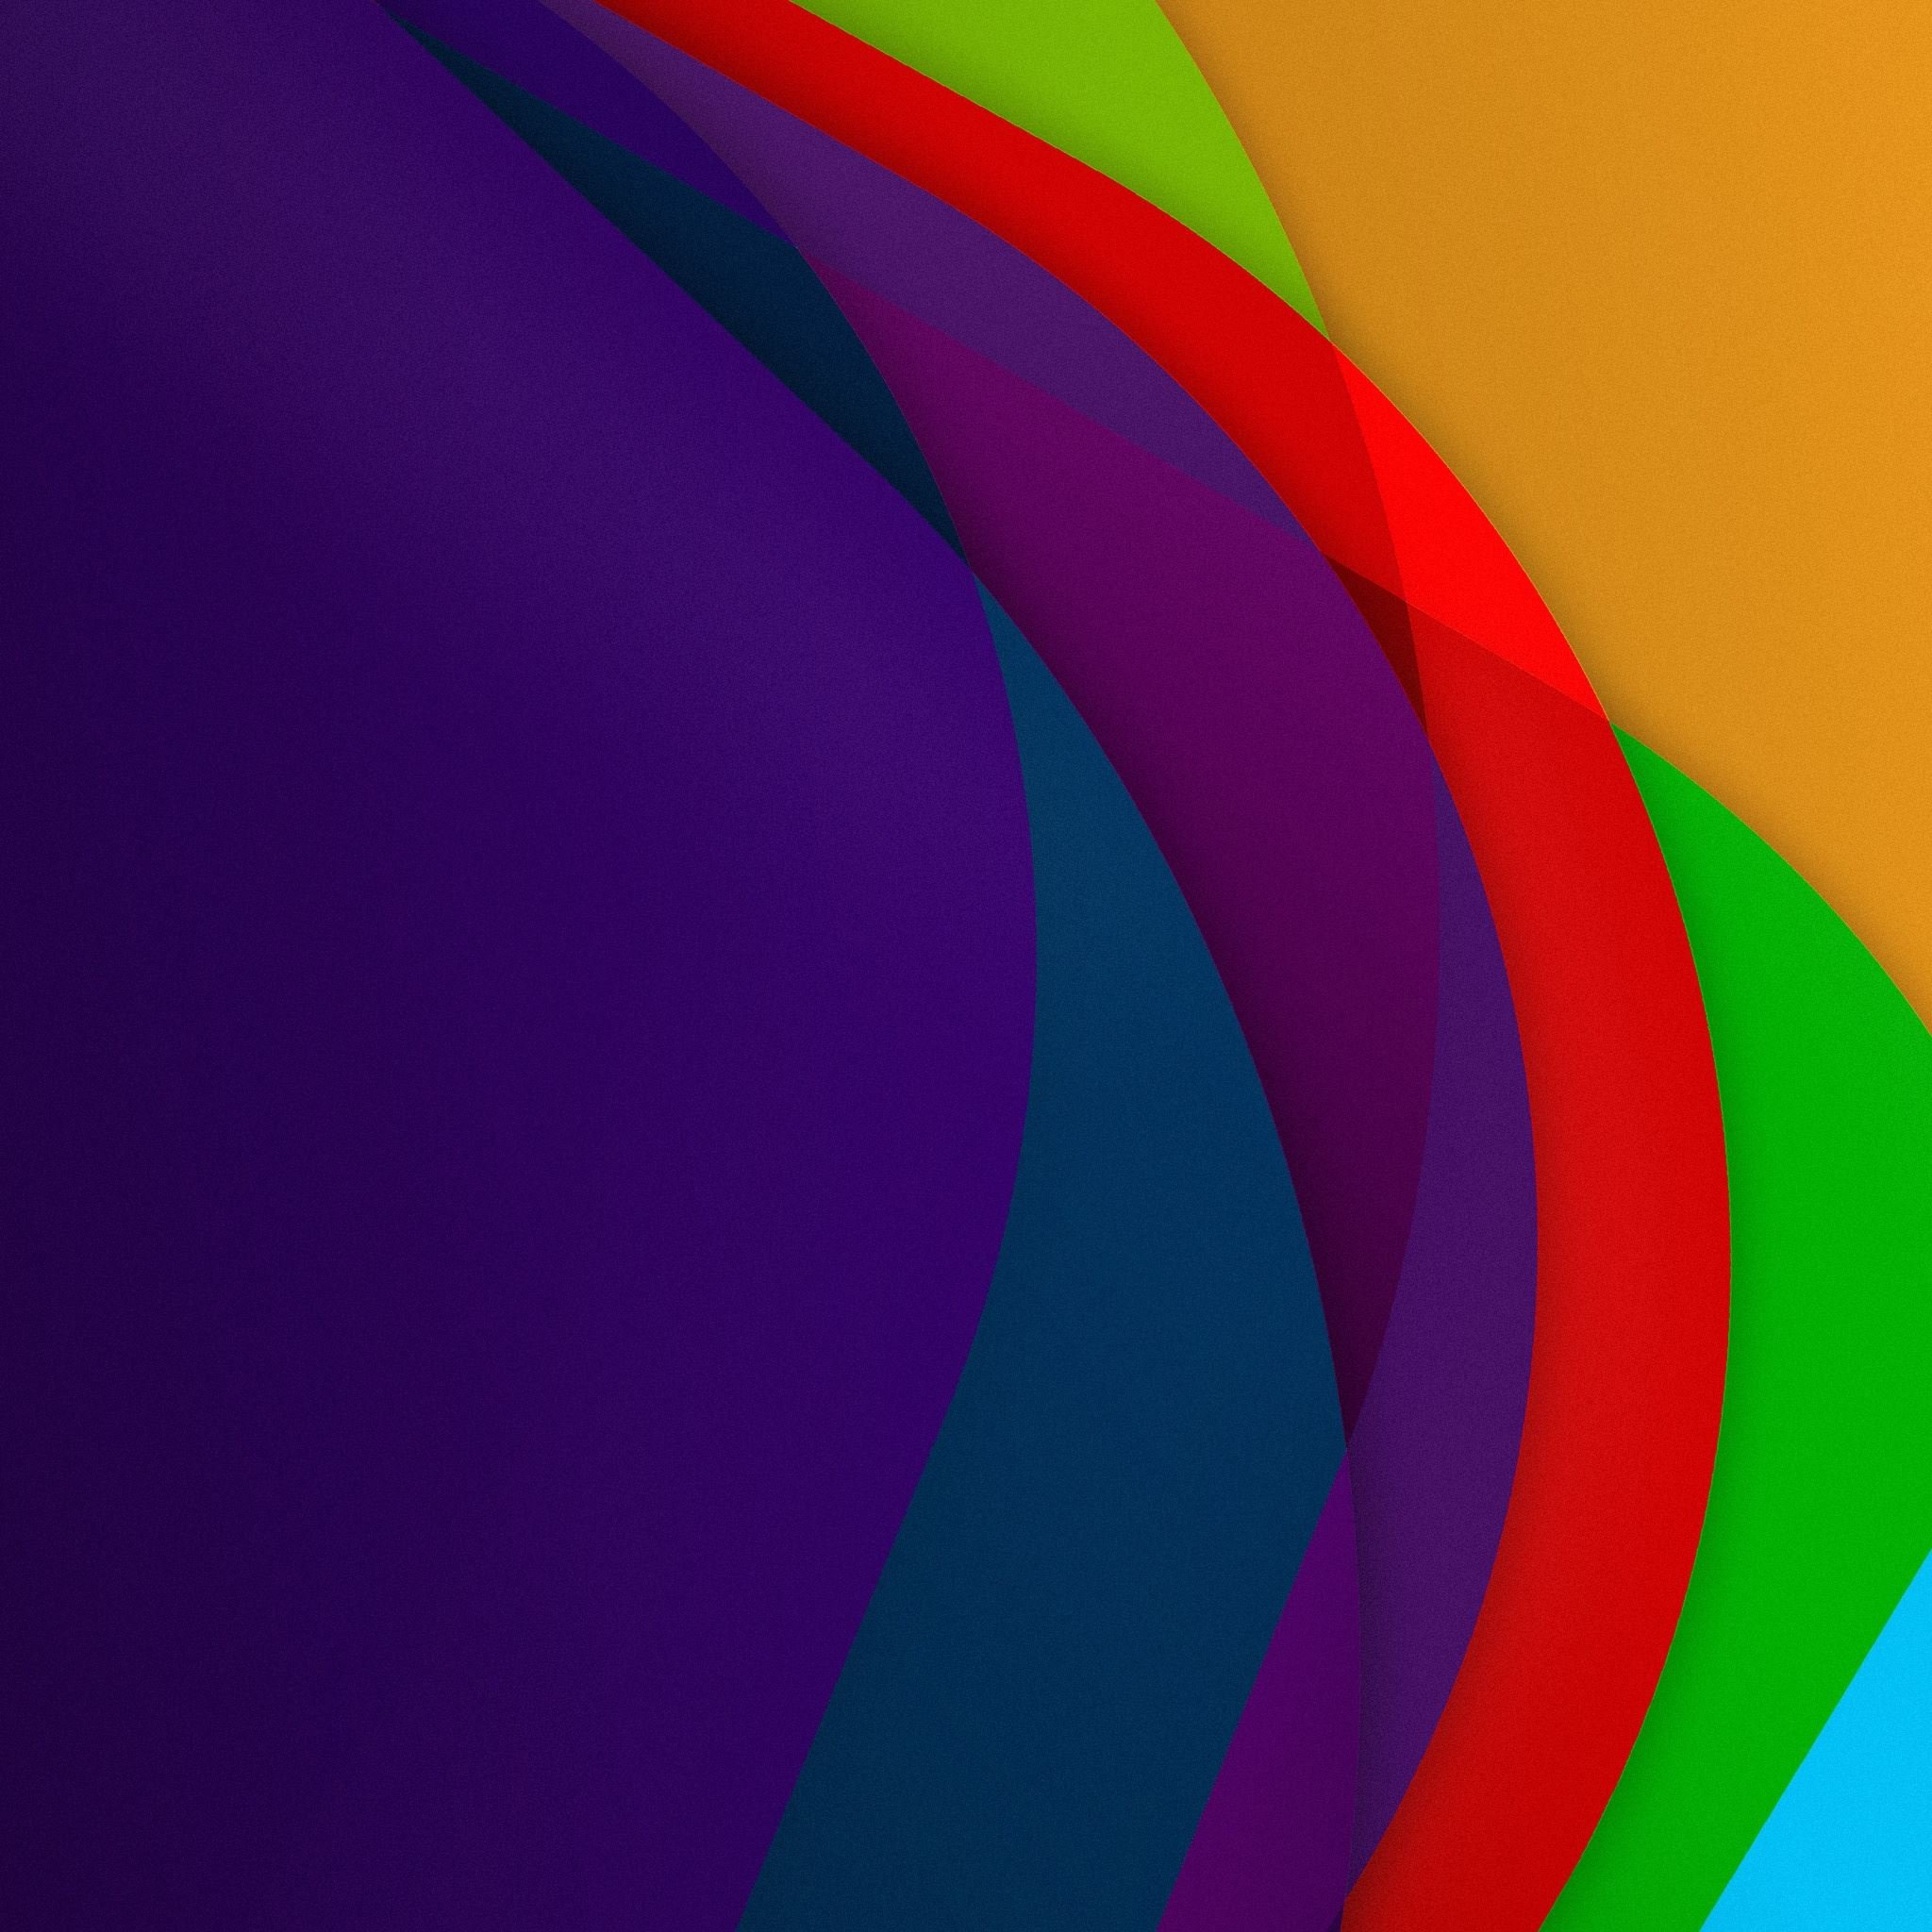 IOS 7 Colorful Lines Background IPad Air Wallpaper